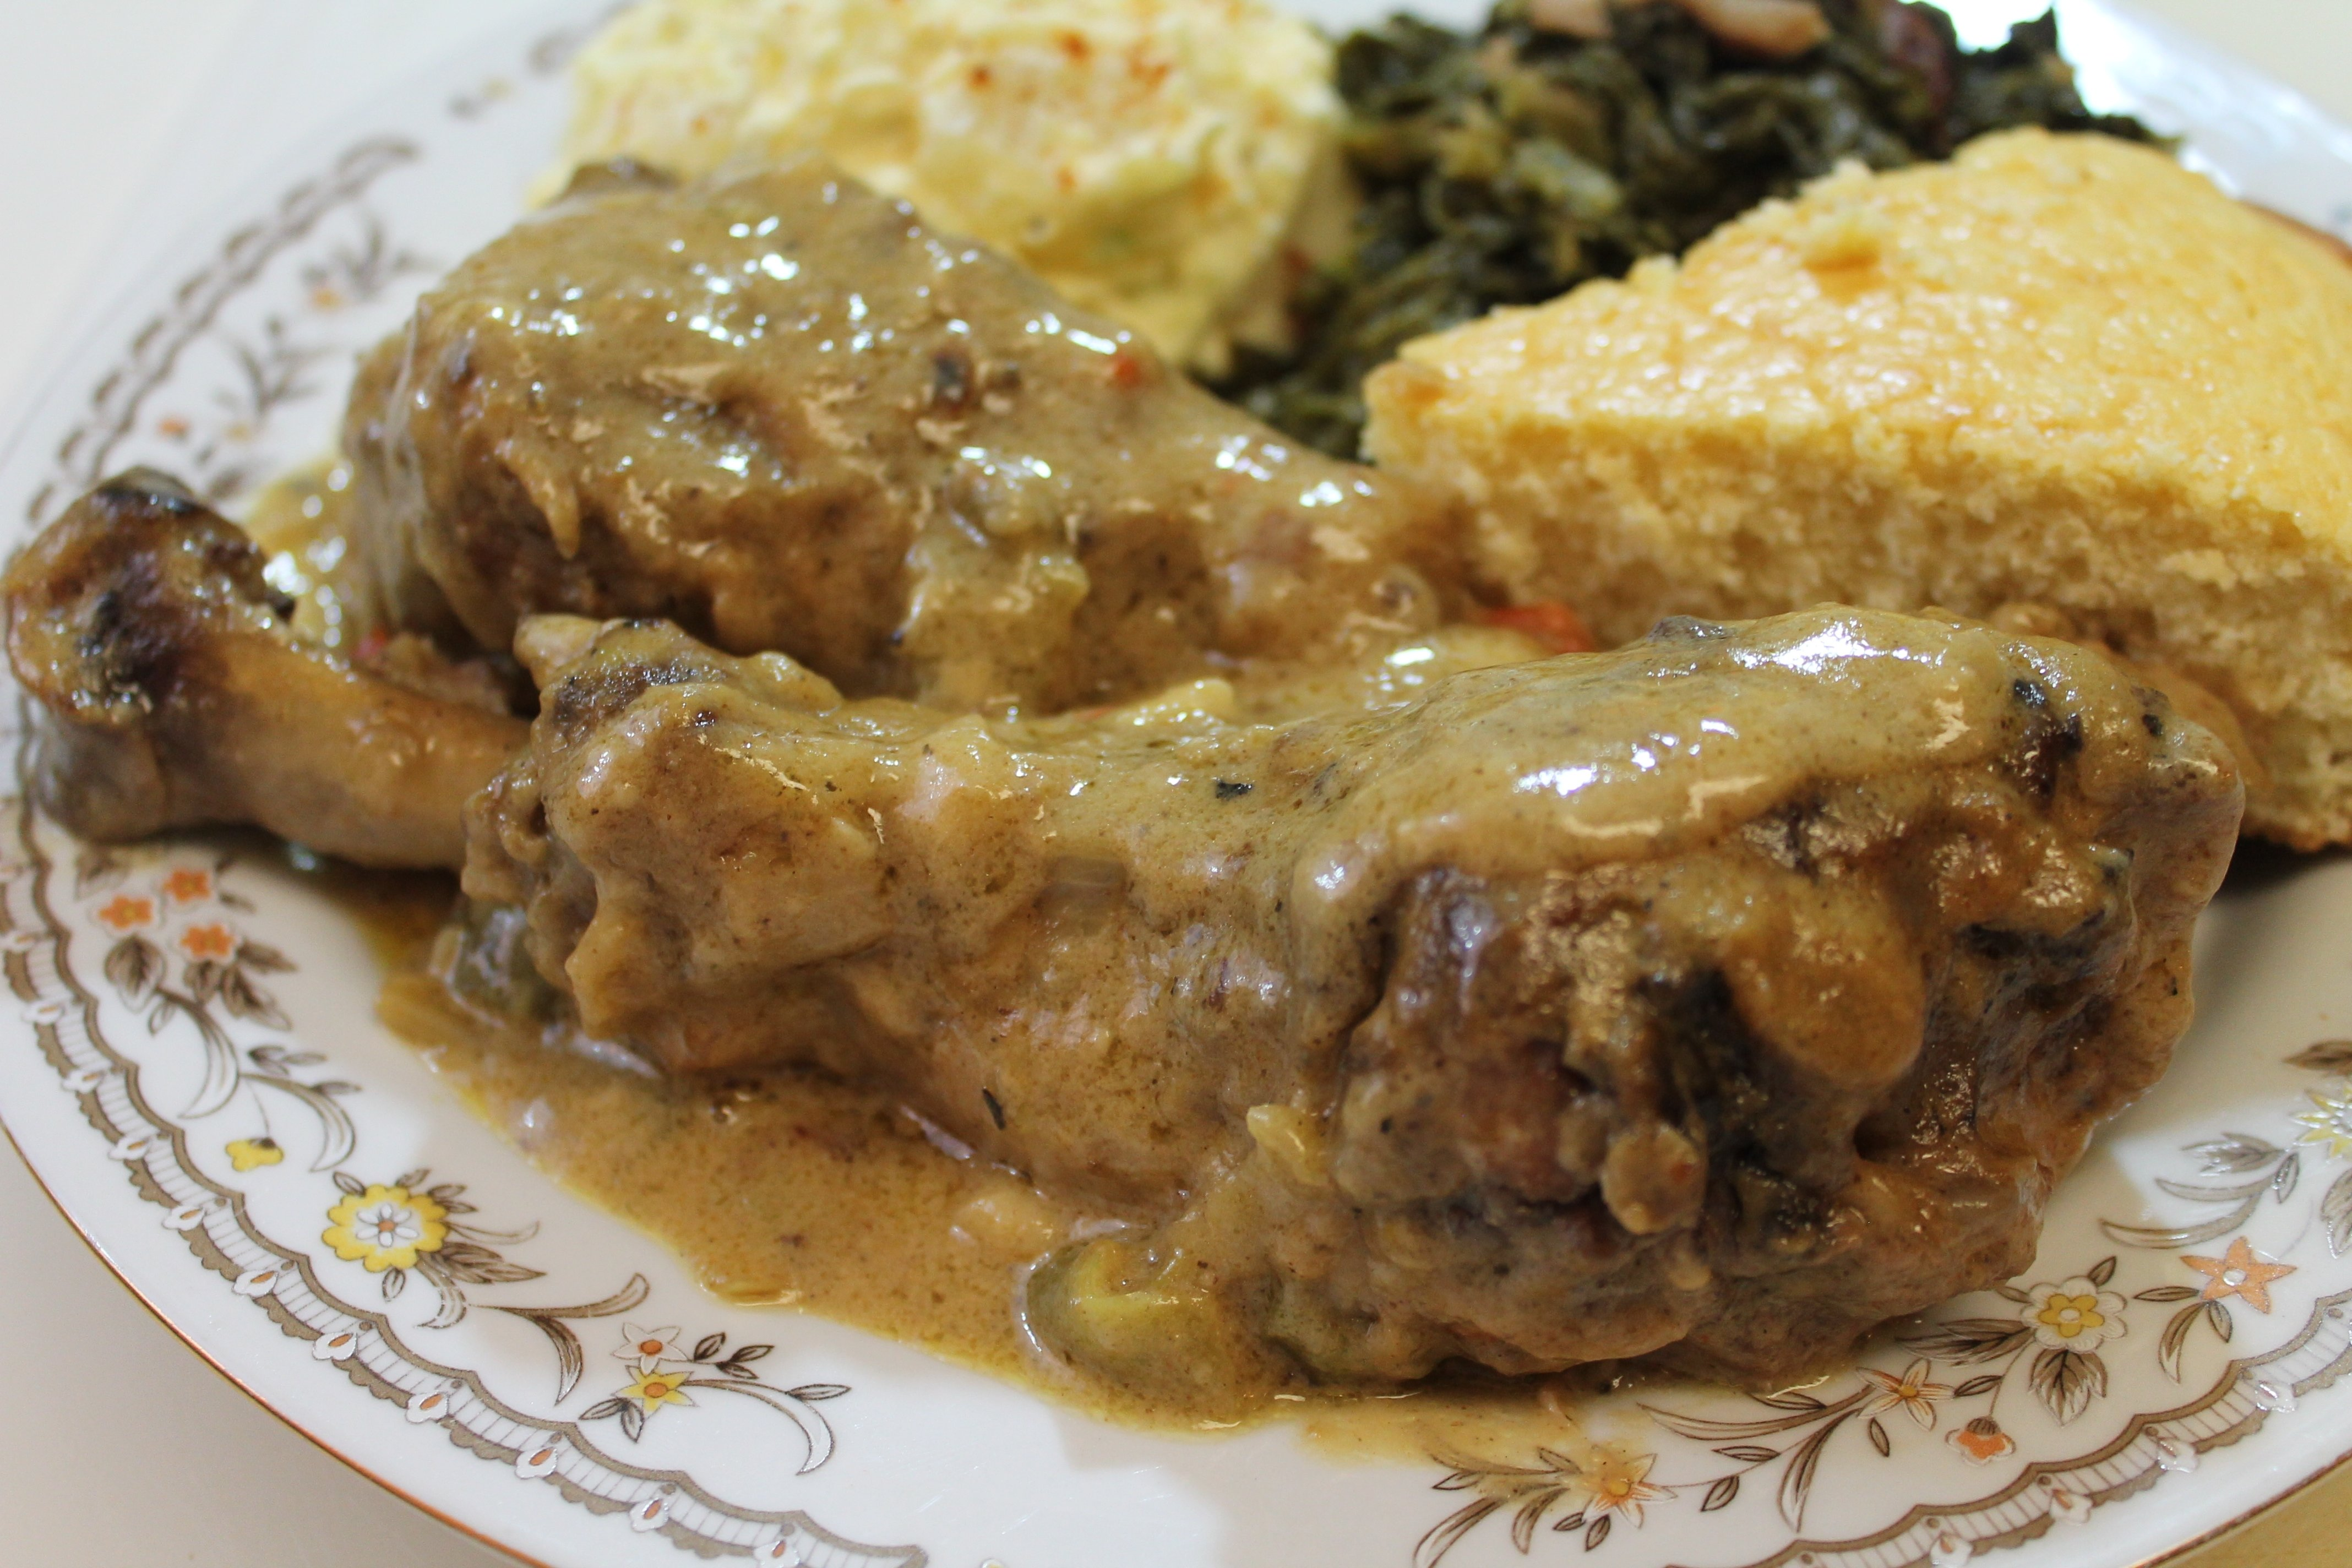 10 best quick soul food dinner ideas 10 best quick soul food dinner ideas southern smothered turkey i heart recipes forumfinder Images